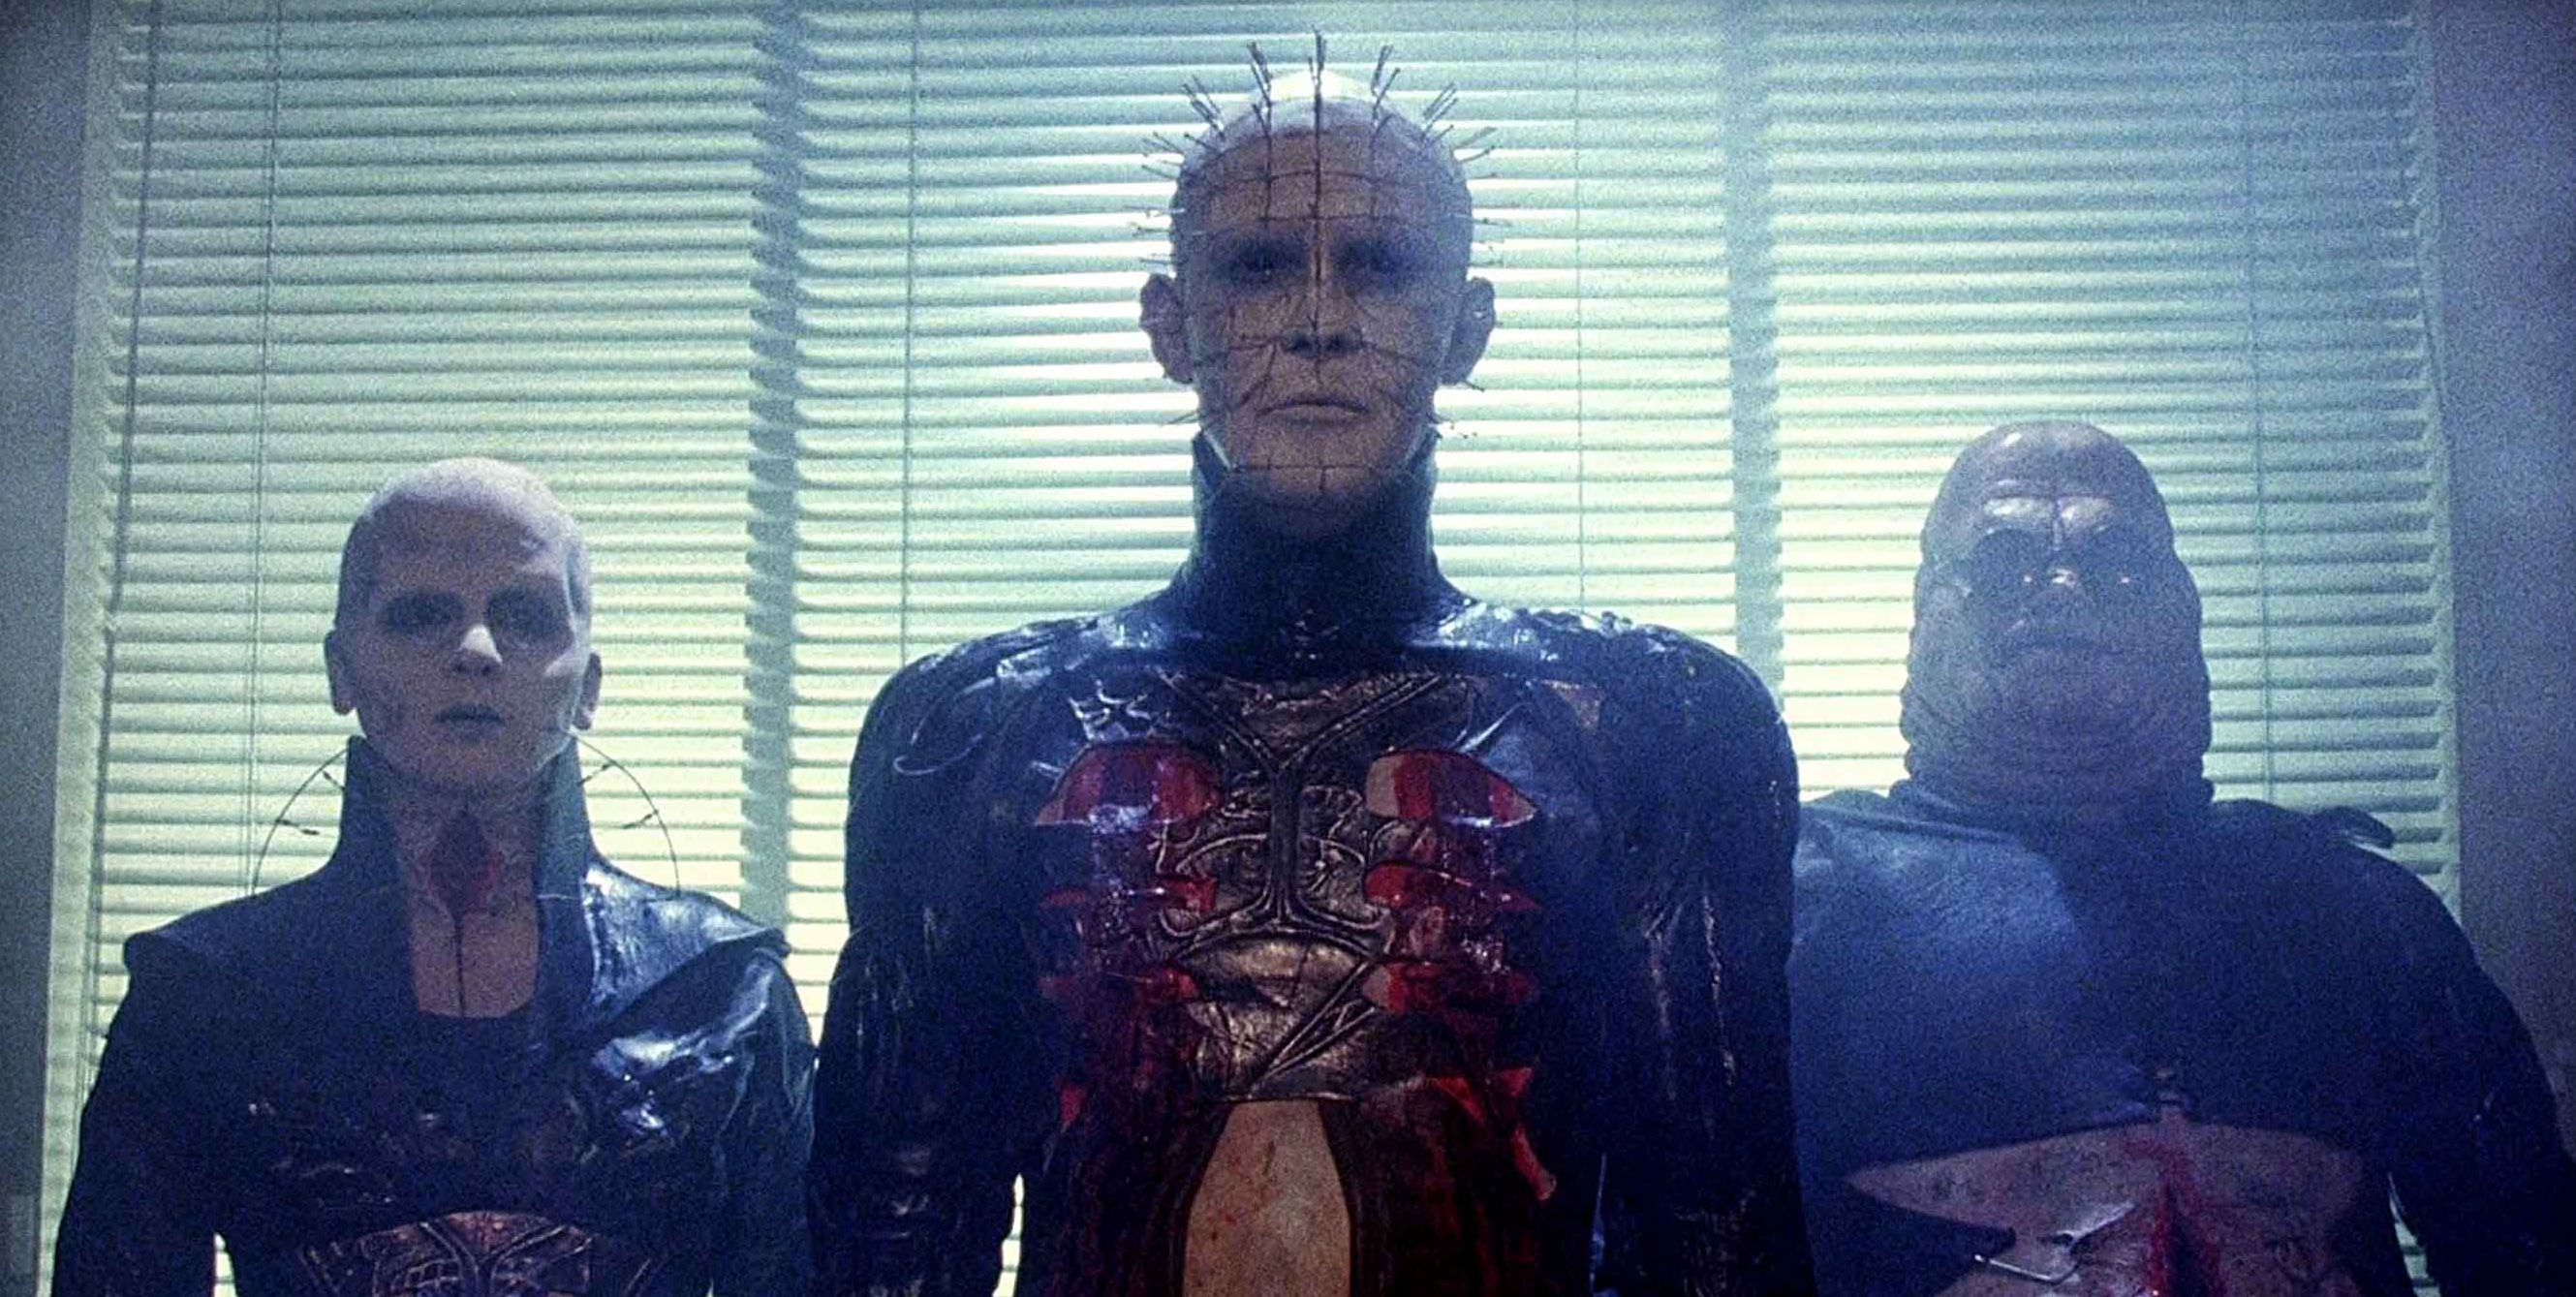 This is a still from Hellraiser.